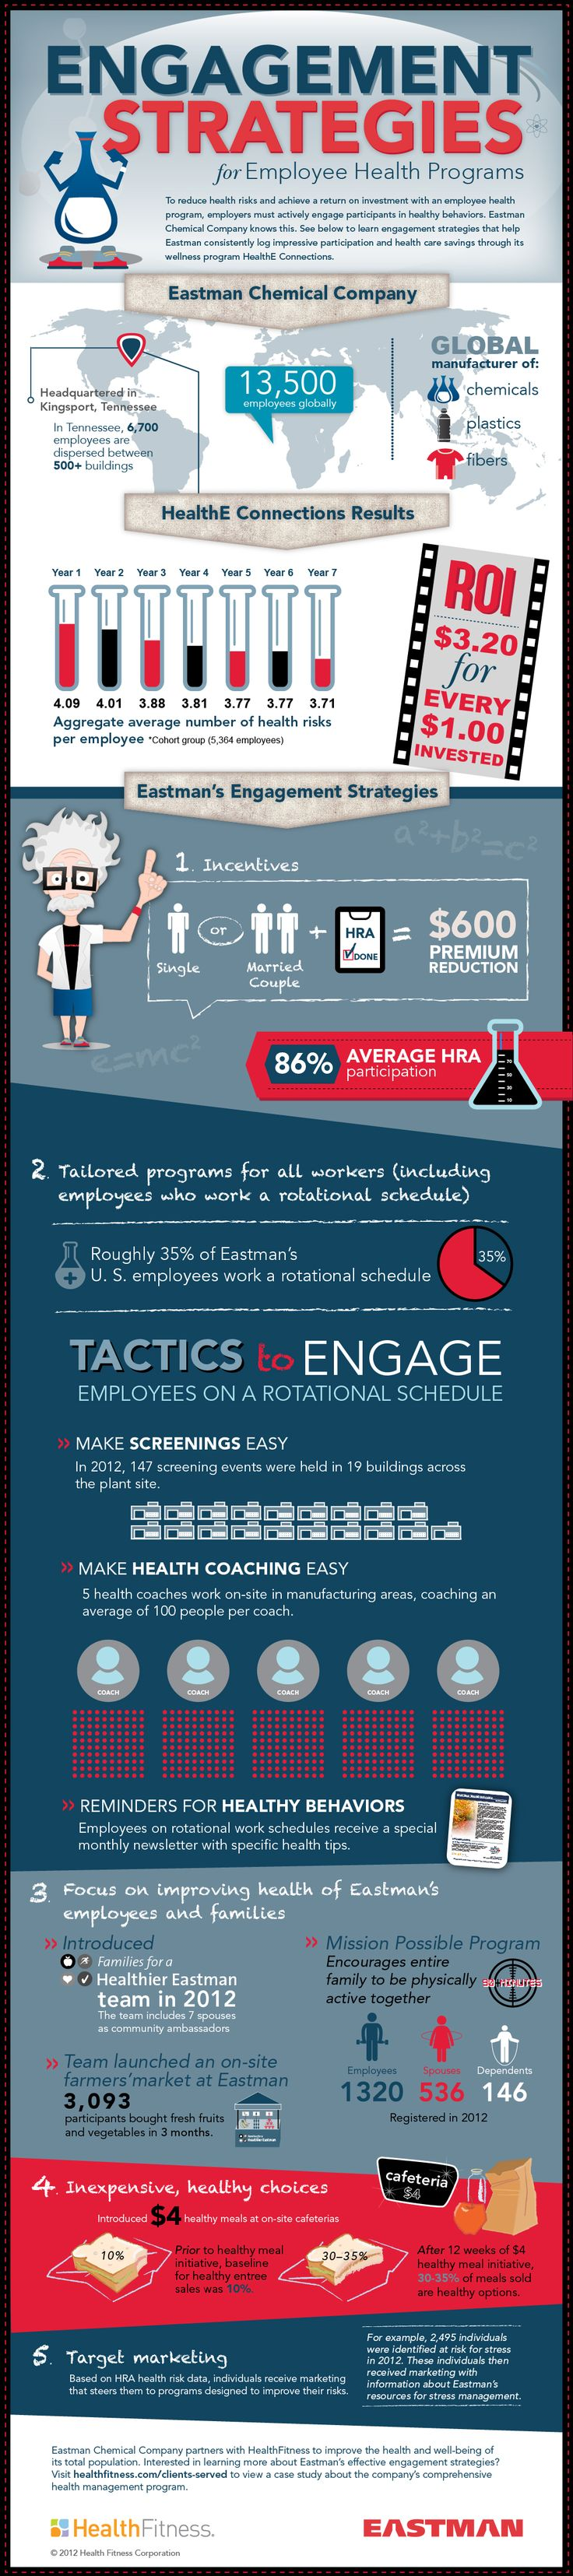 [infographic] value of employer sponsored wellness program. patient engagement strategies - visual.ly